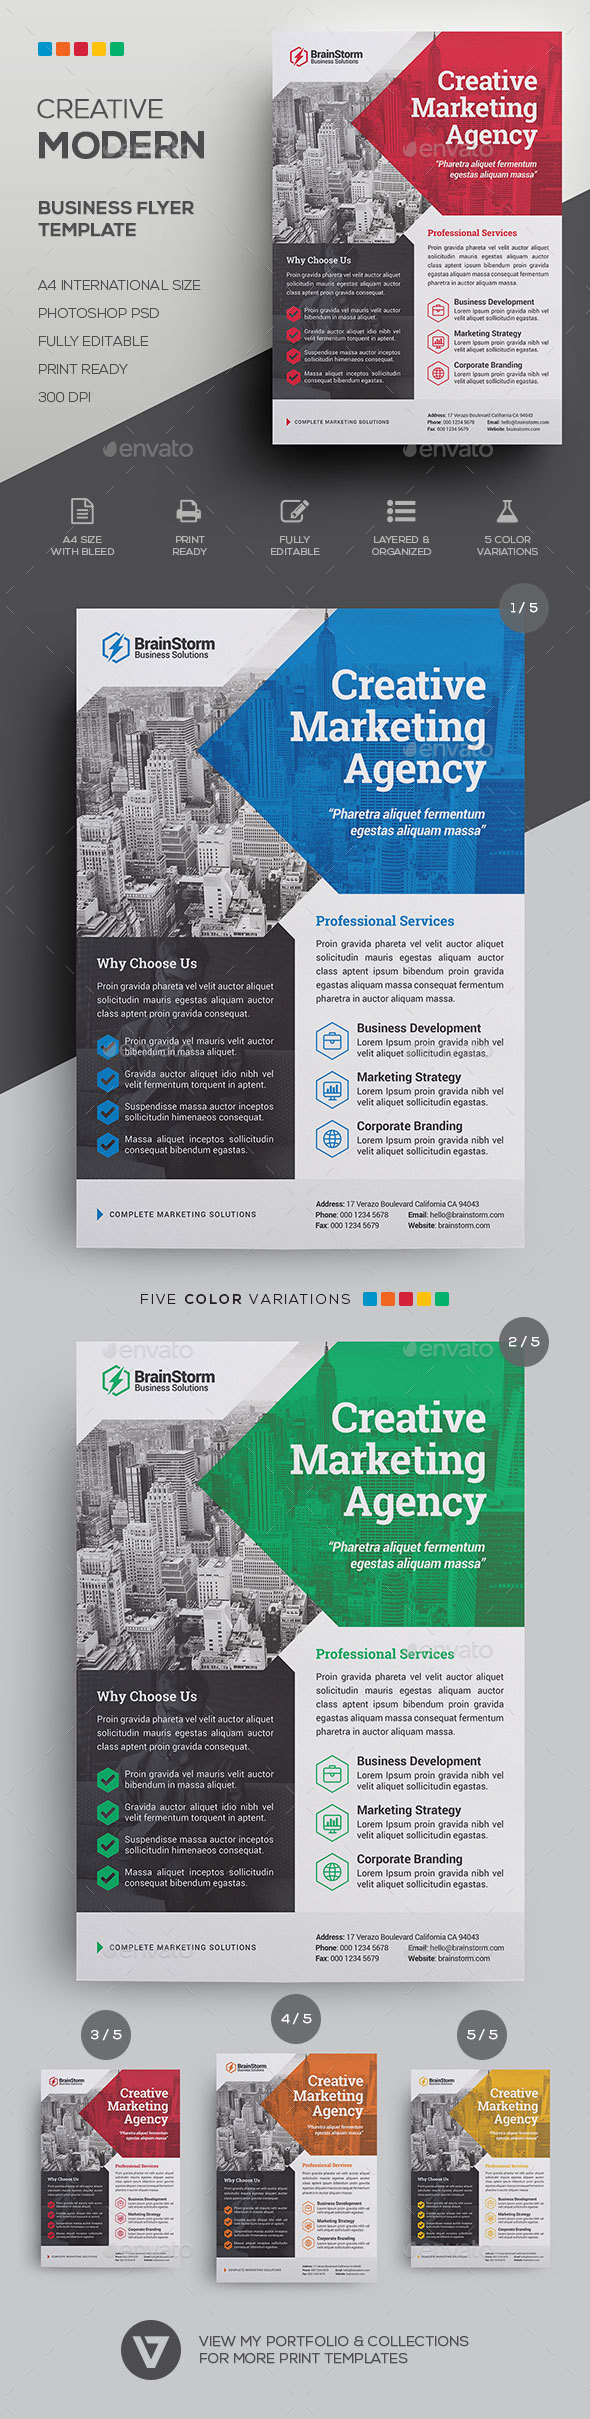 Corporate business flyer template by verazo graphicriver corporate business flyer template corporate flyers cheaphphosting